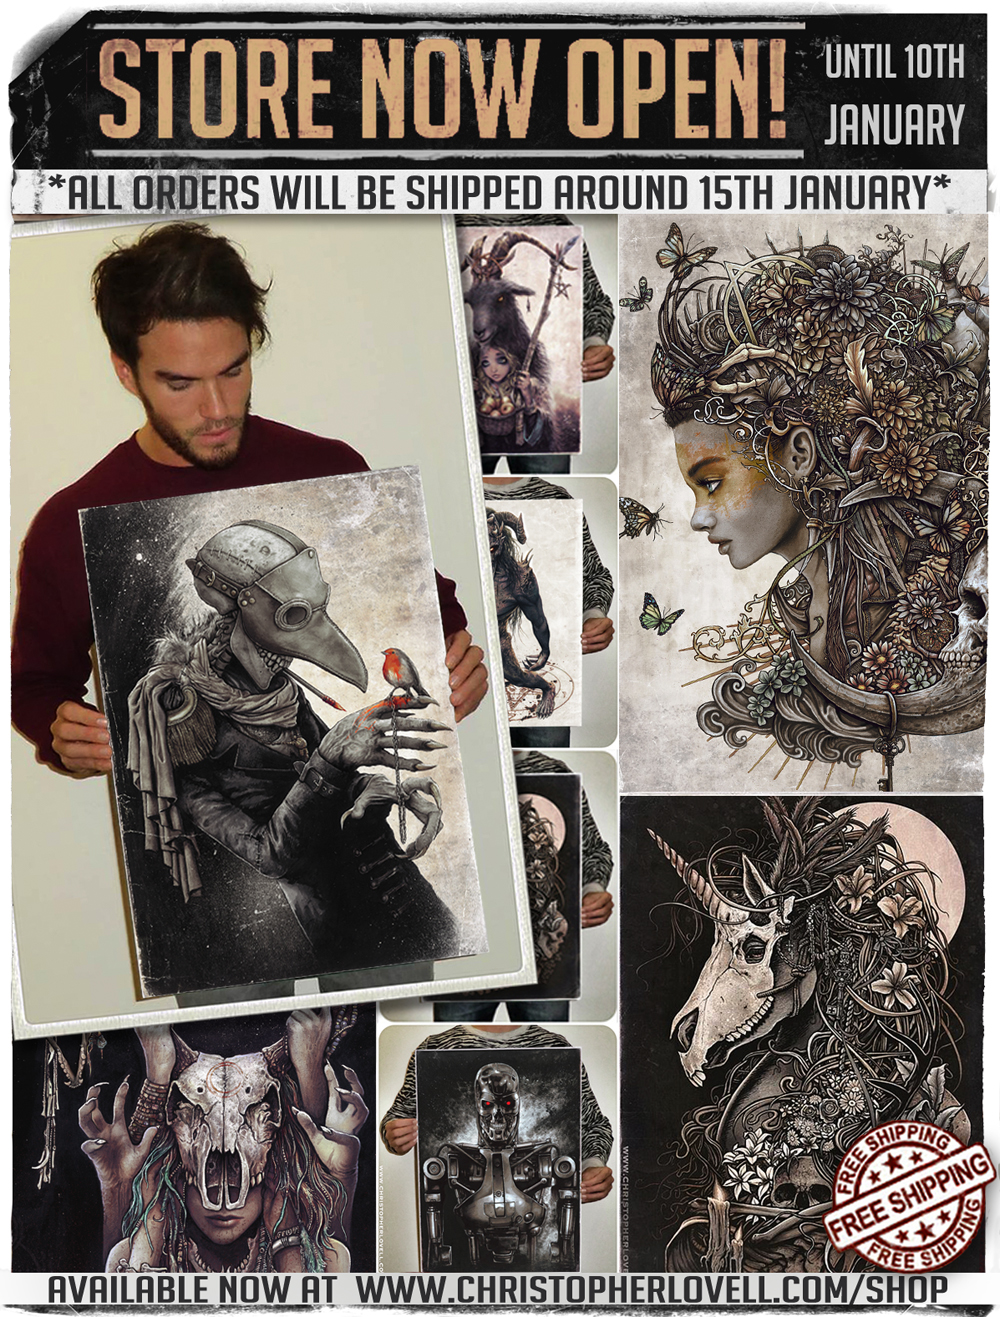 ✨  MY STORE IS OPEN AGAIN UNTIL 10th JAN!  ✨   *PLEASE NOTE!* All orders will be shipped around the 15th JANUARY.    FREE worldwide shipping and every print is signed, packaged and sent by me personally. ;)      LOADS of prints to choose from. Hope you see something you or someone else may like! O X    http://www.christopherlovell.com/shop/